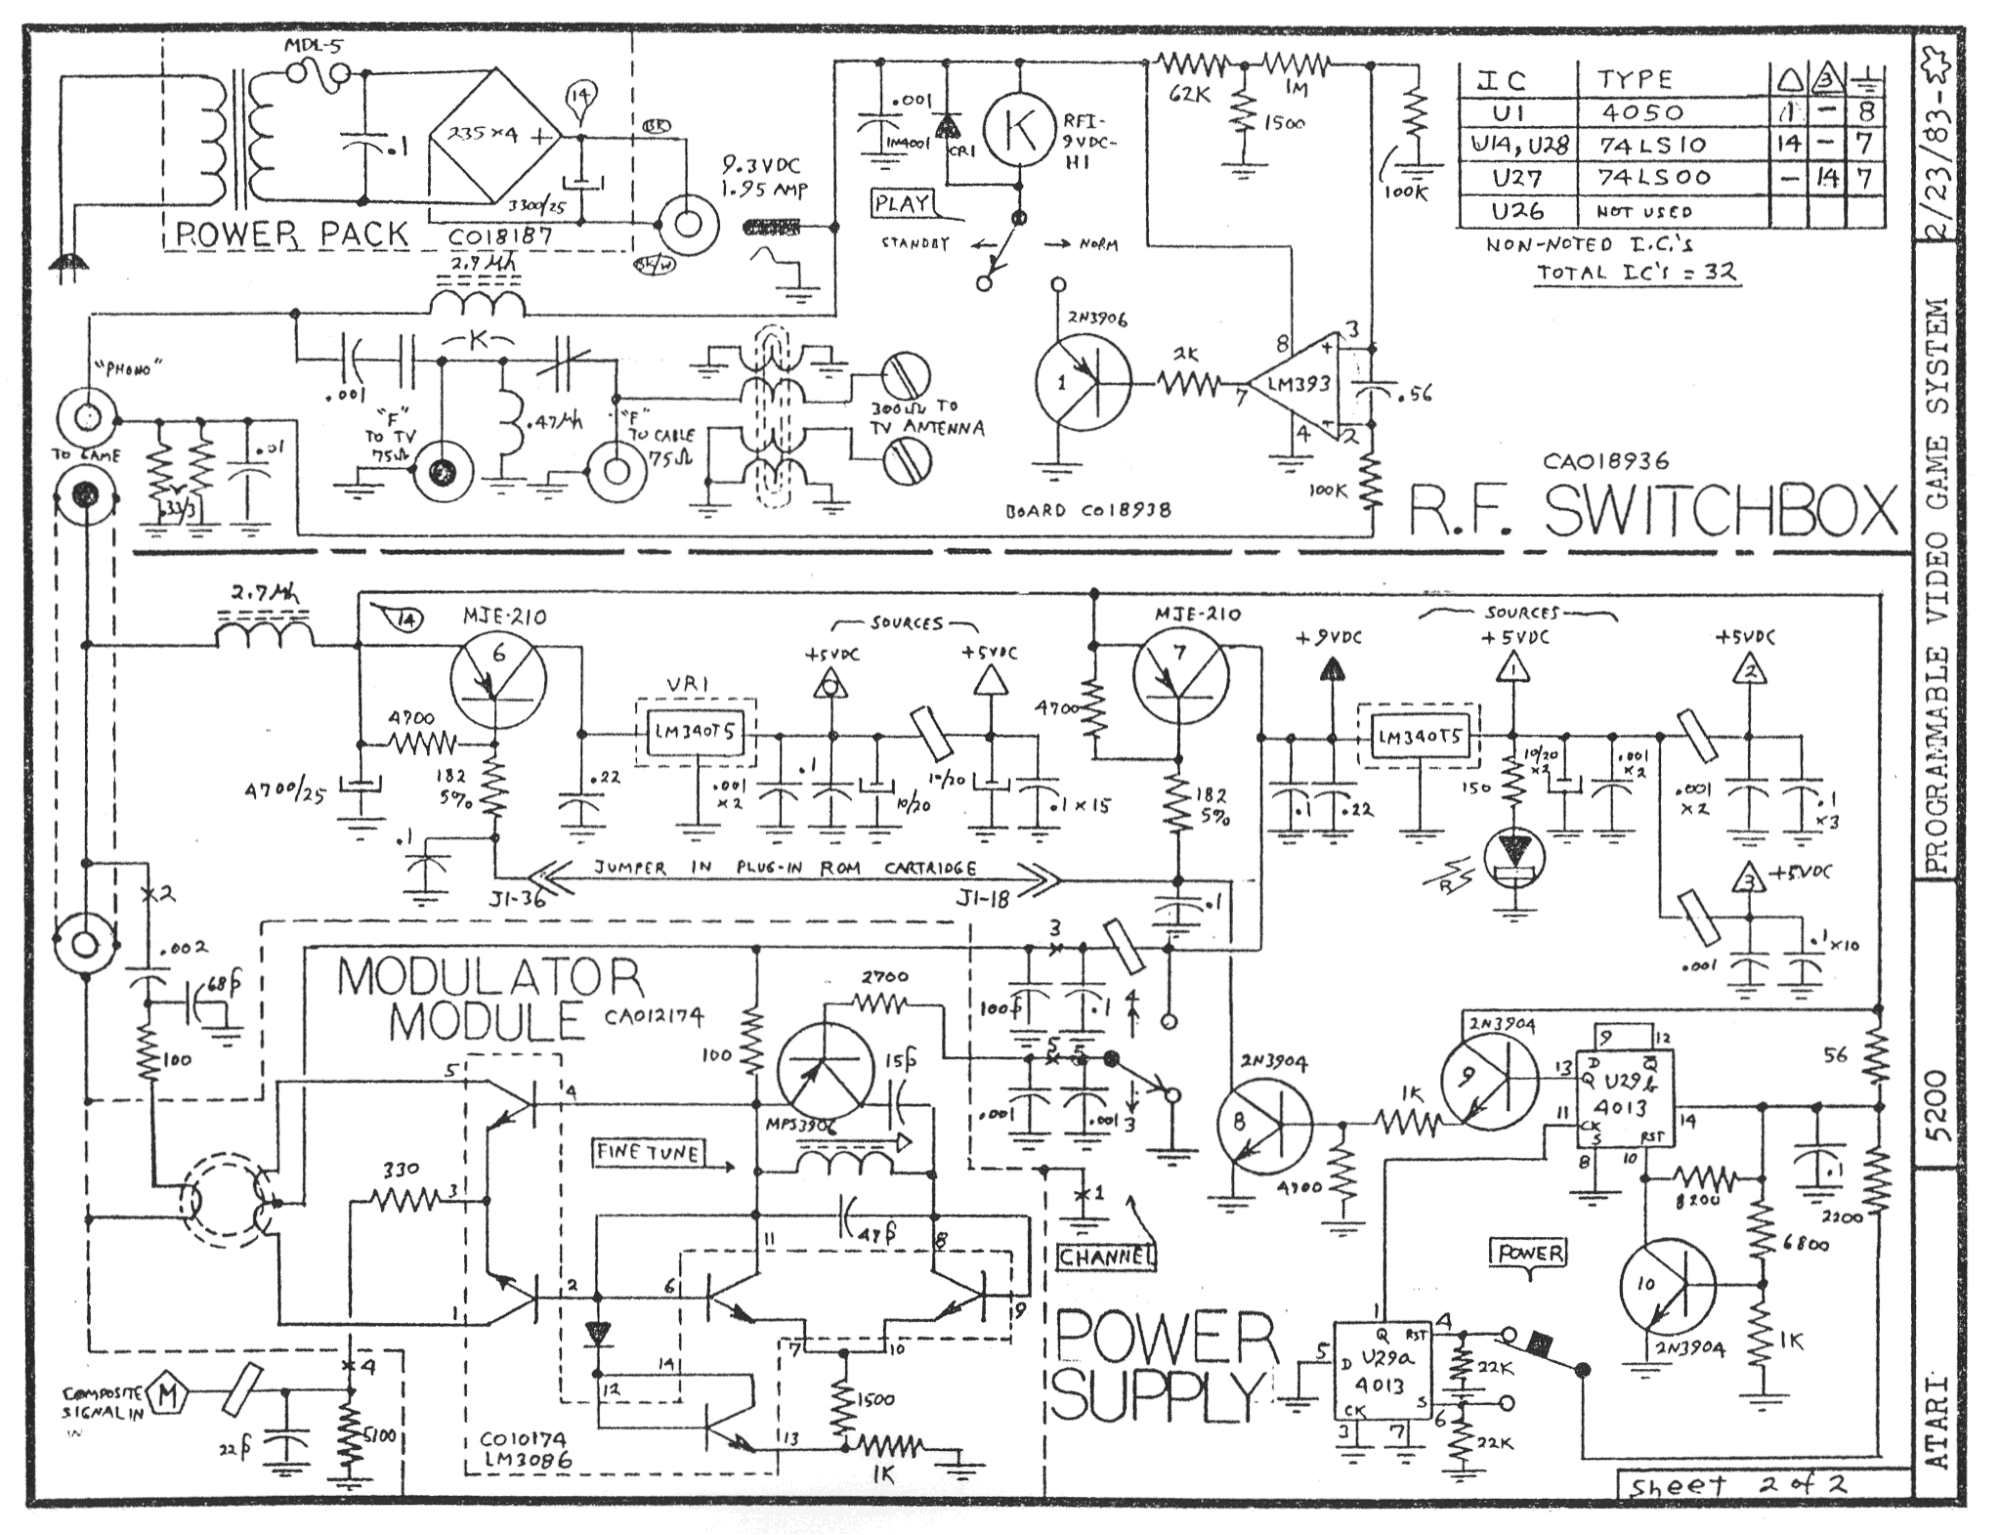 atari pole position wiring diagram